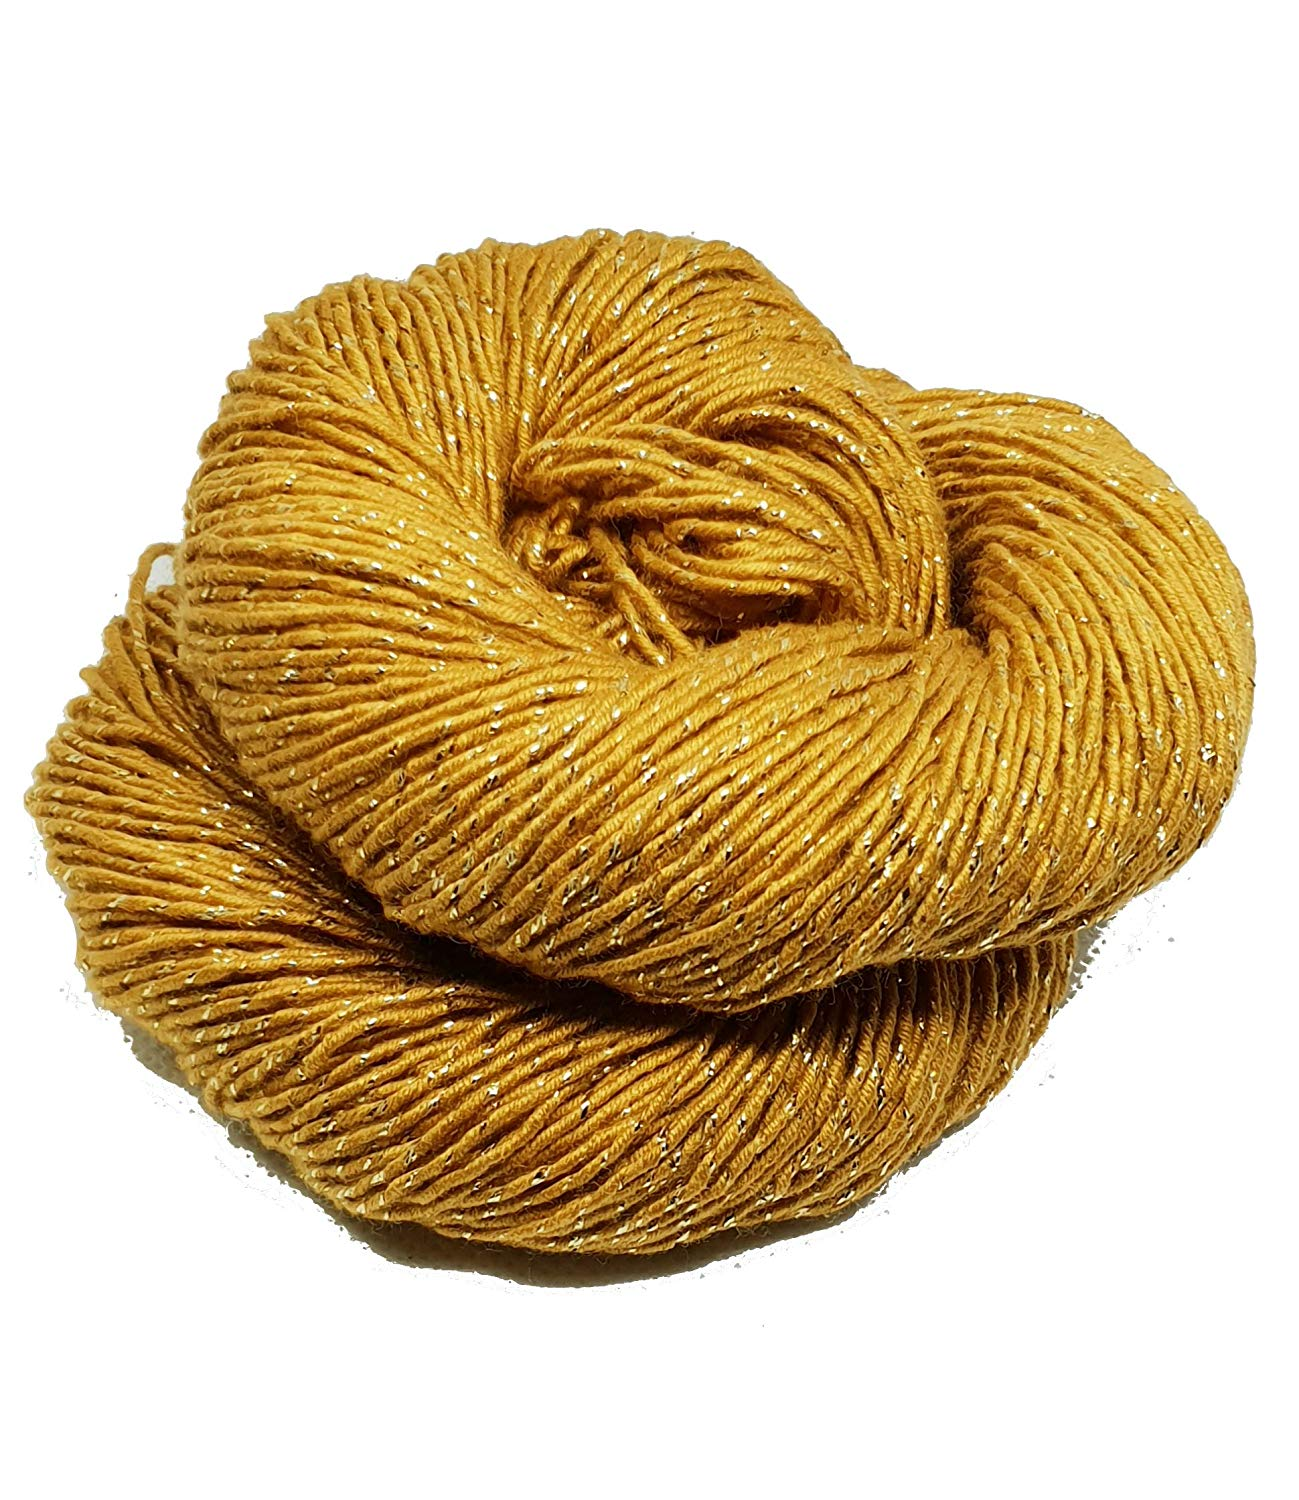 Mulberry silk with banana fiber and glimmer